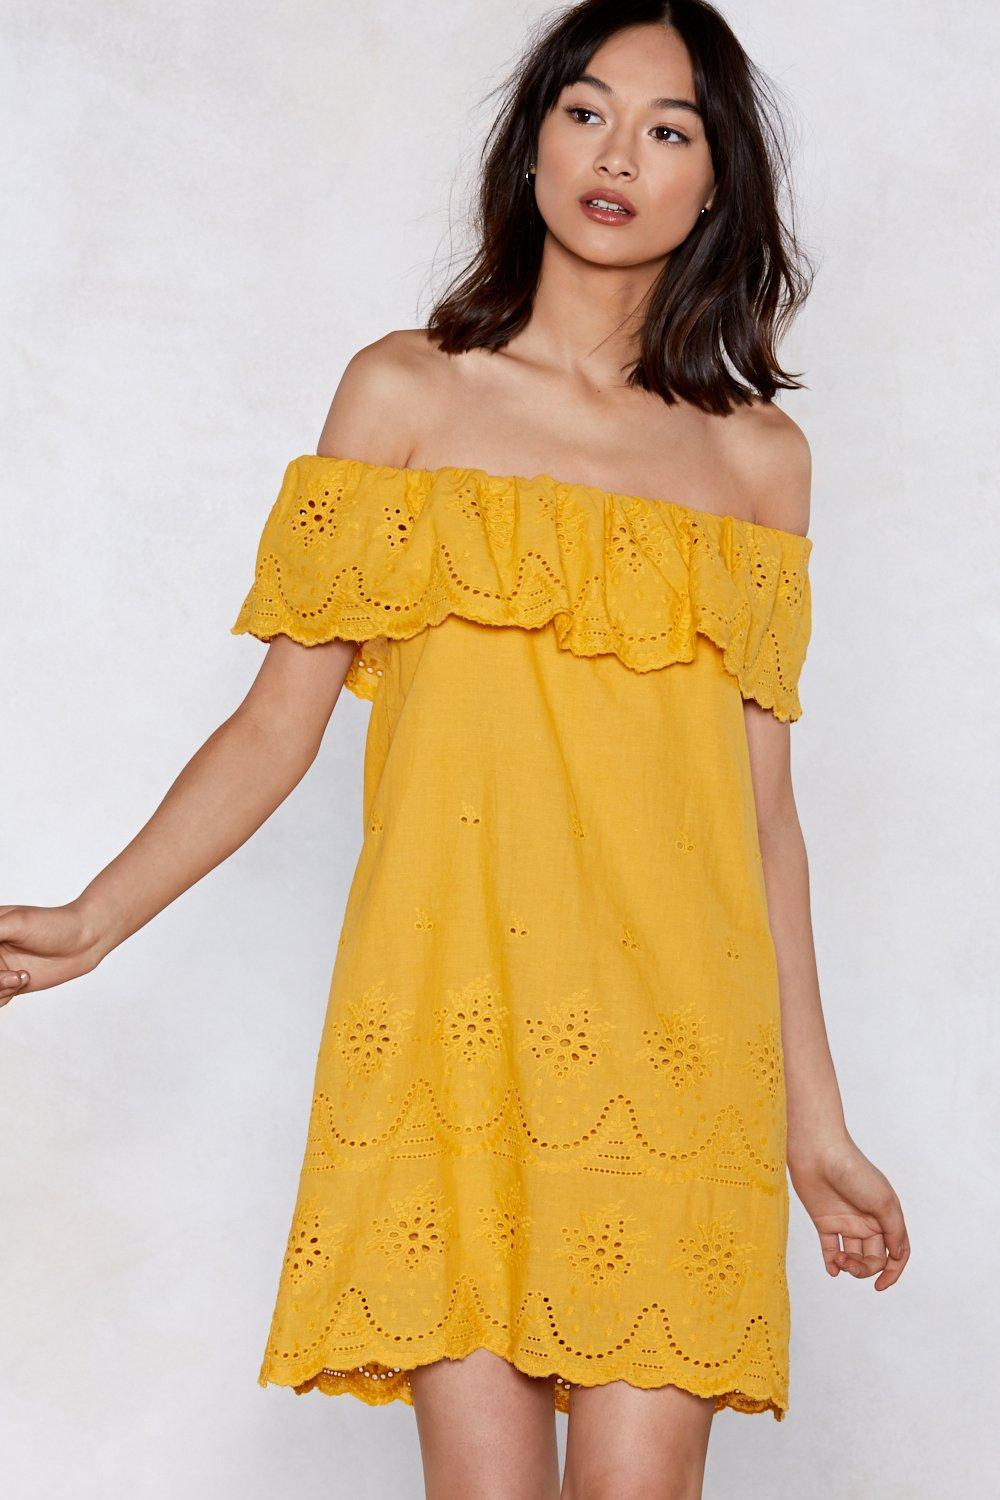 Nasty Gal Move Over Off-the-shoulder Dress in Yellow - Lyst 4d92b68a1